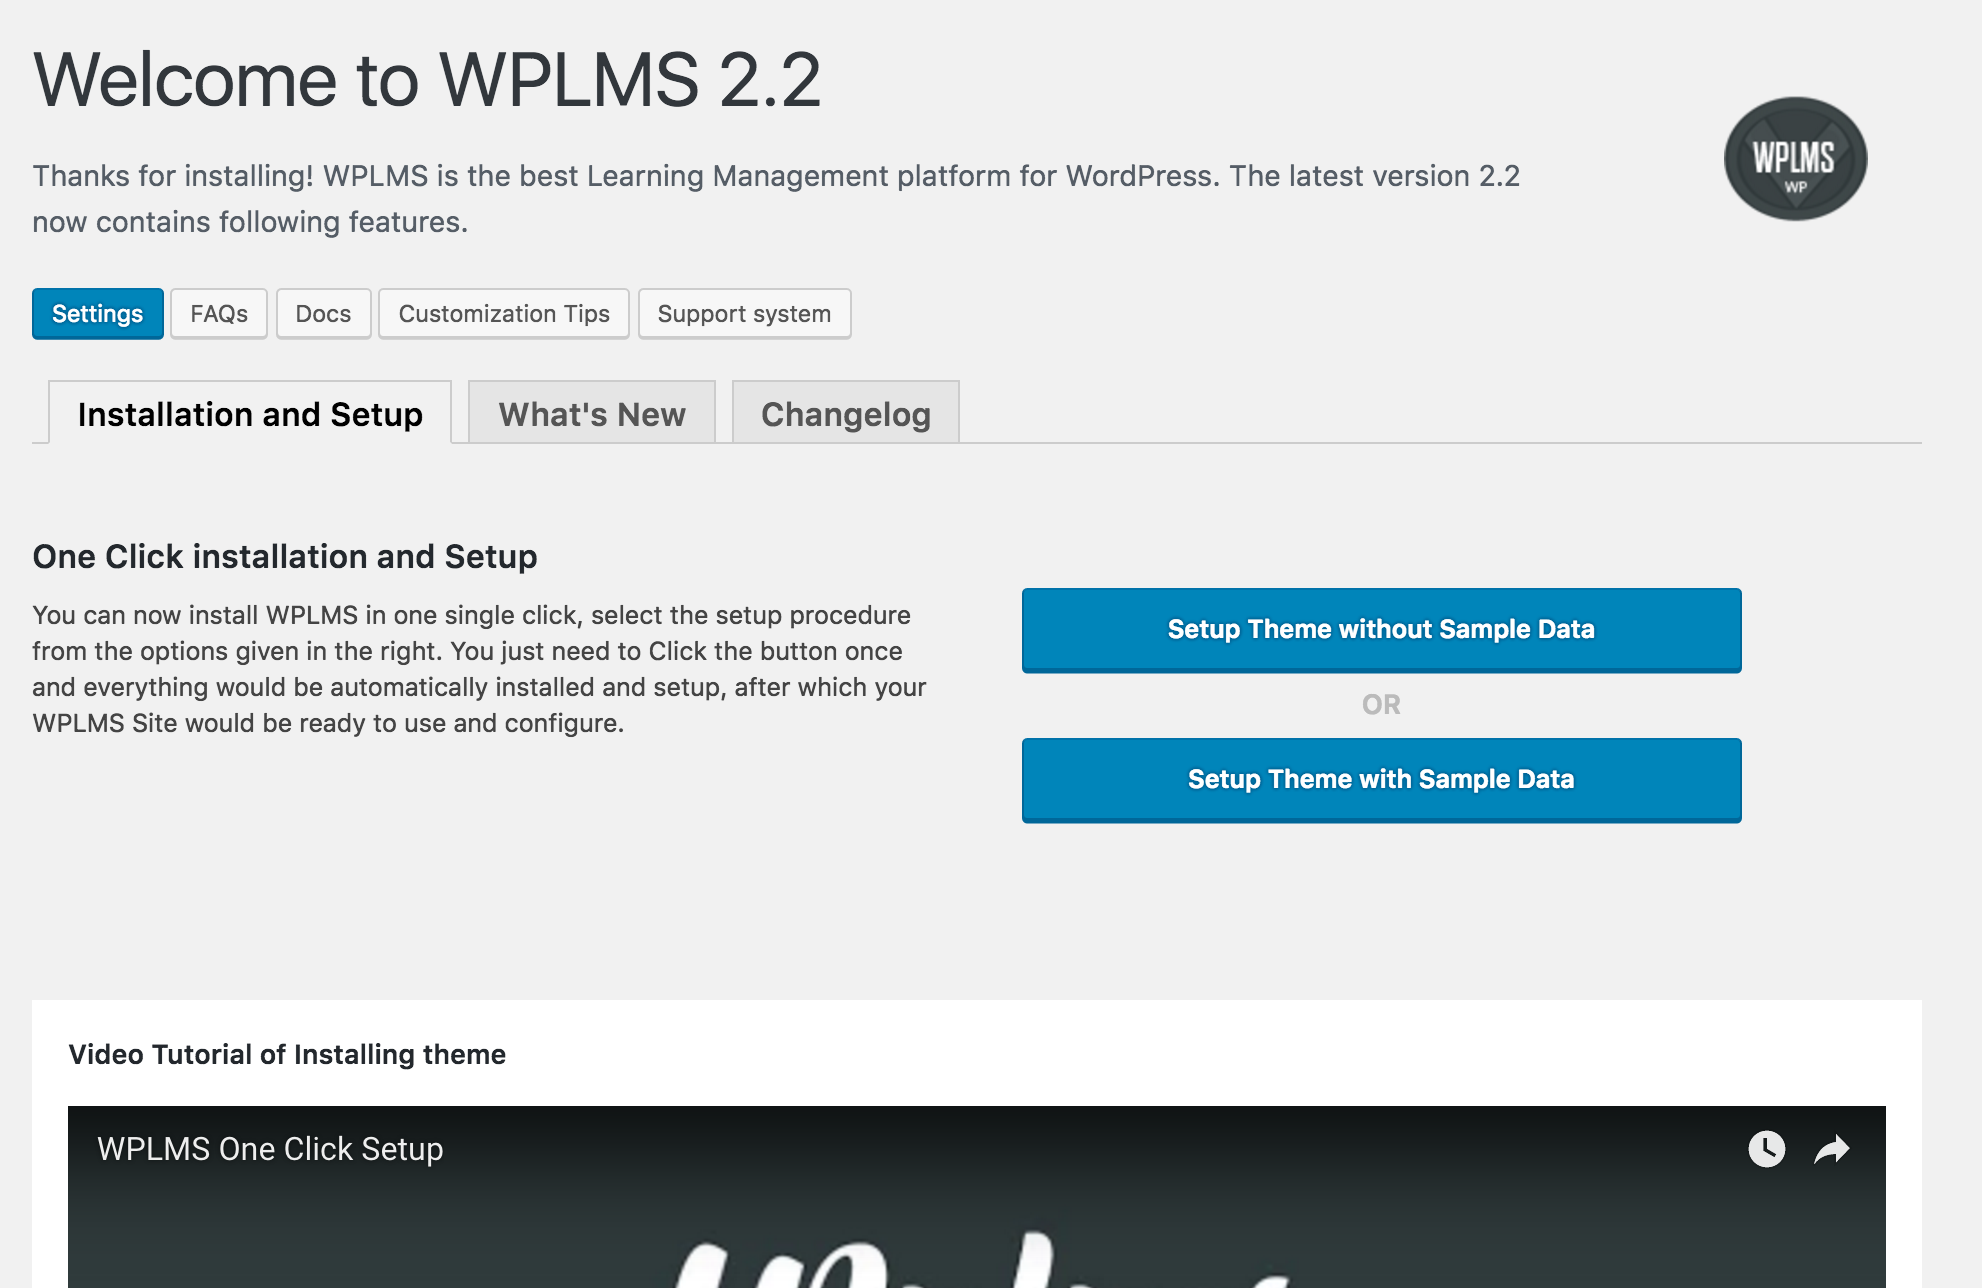 WPLMS Setup with Sample Data